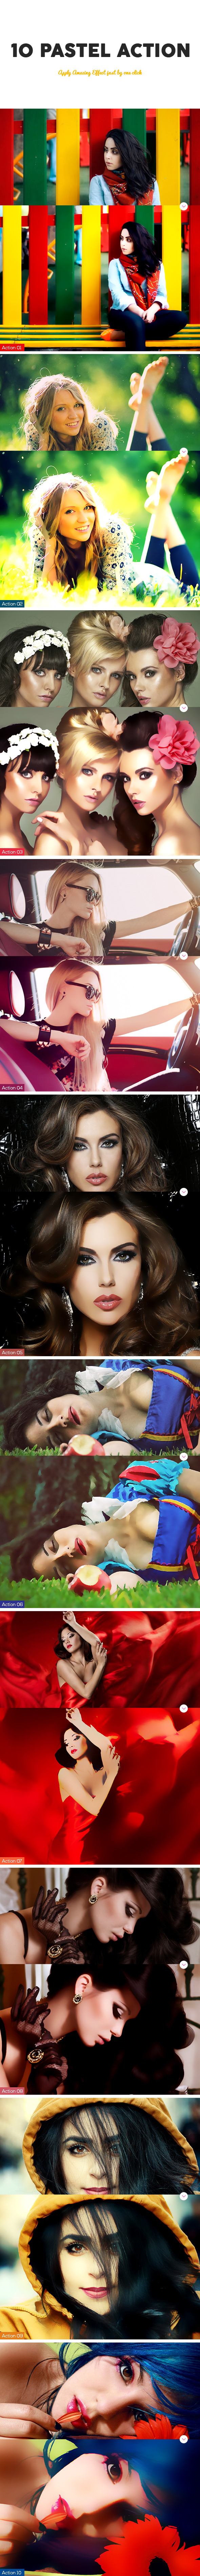 10 Pastel Photoshop Action - Photo Effects Actions